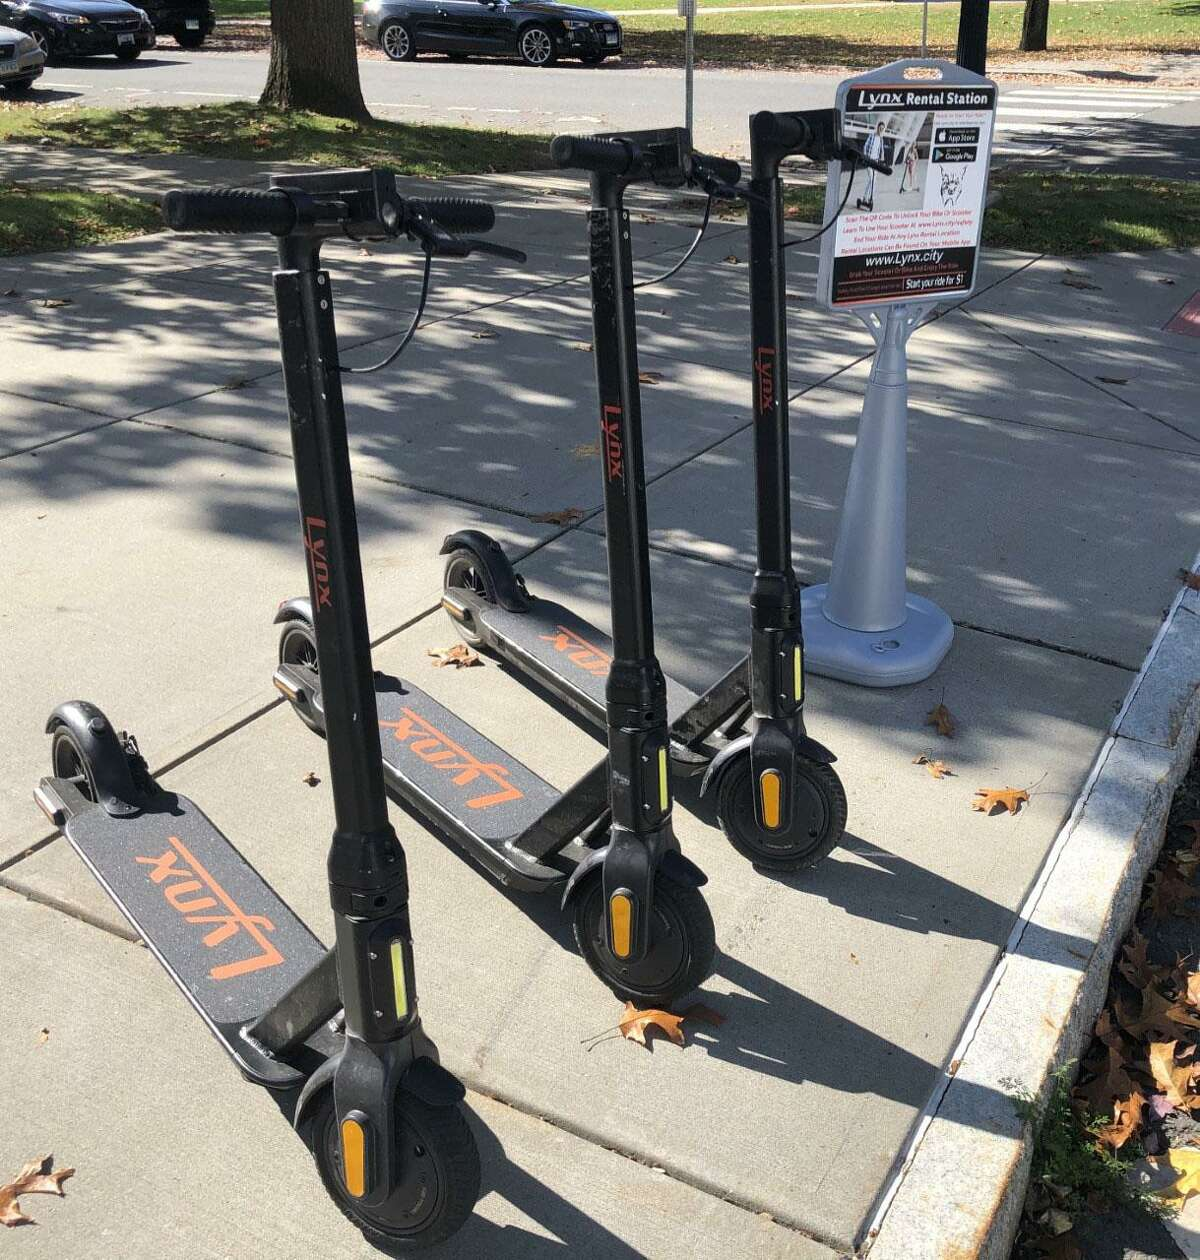 Using a smart phone app, scooters are available to rent in downtown New Milford.